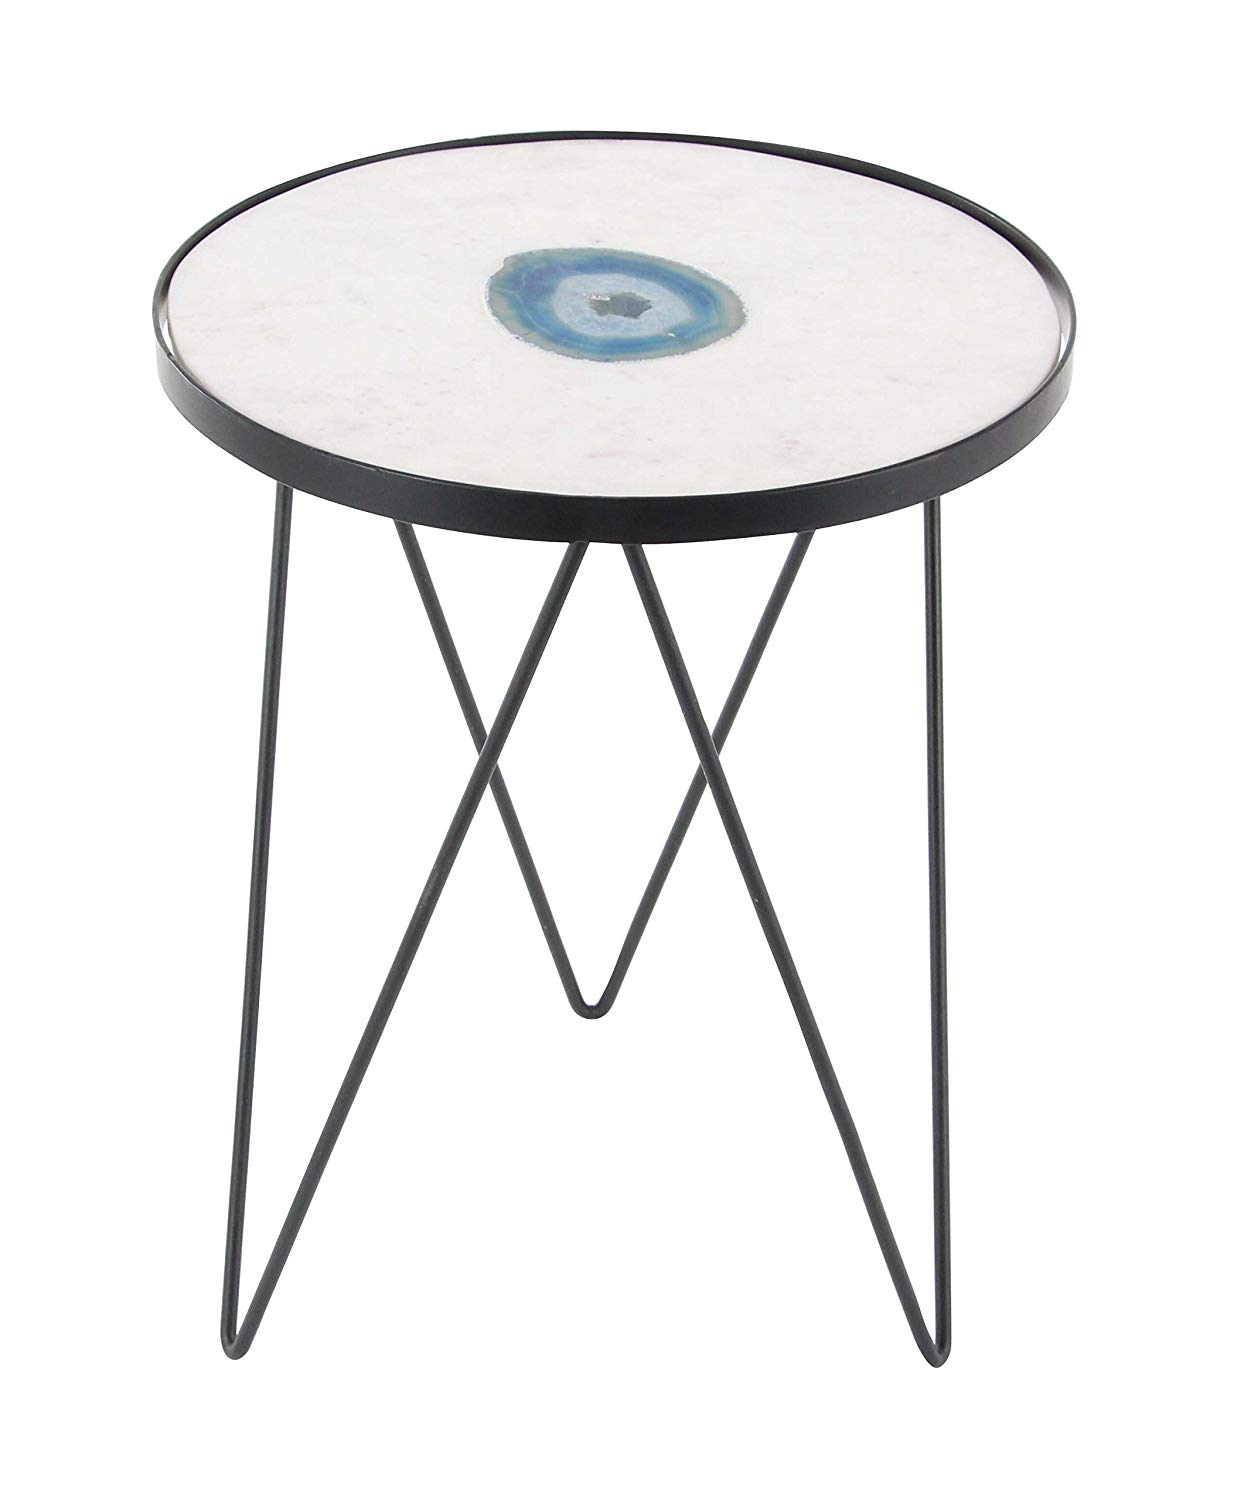 charming white marble and metal round accent table small for faux tablecloth pedestal wooden unfinished wood ideas covers decorating threshold side full size west elm bench top